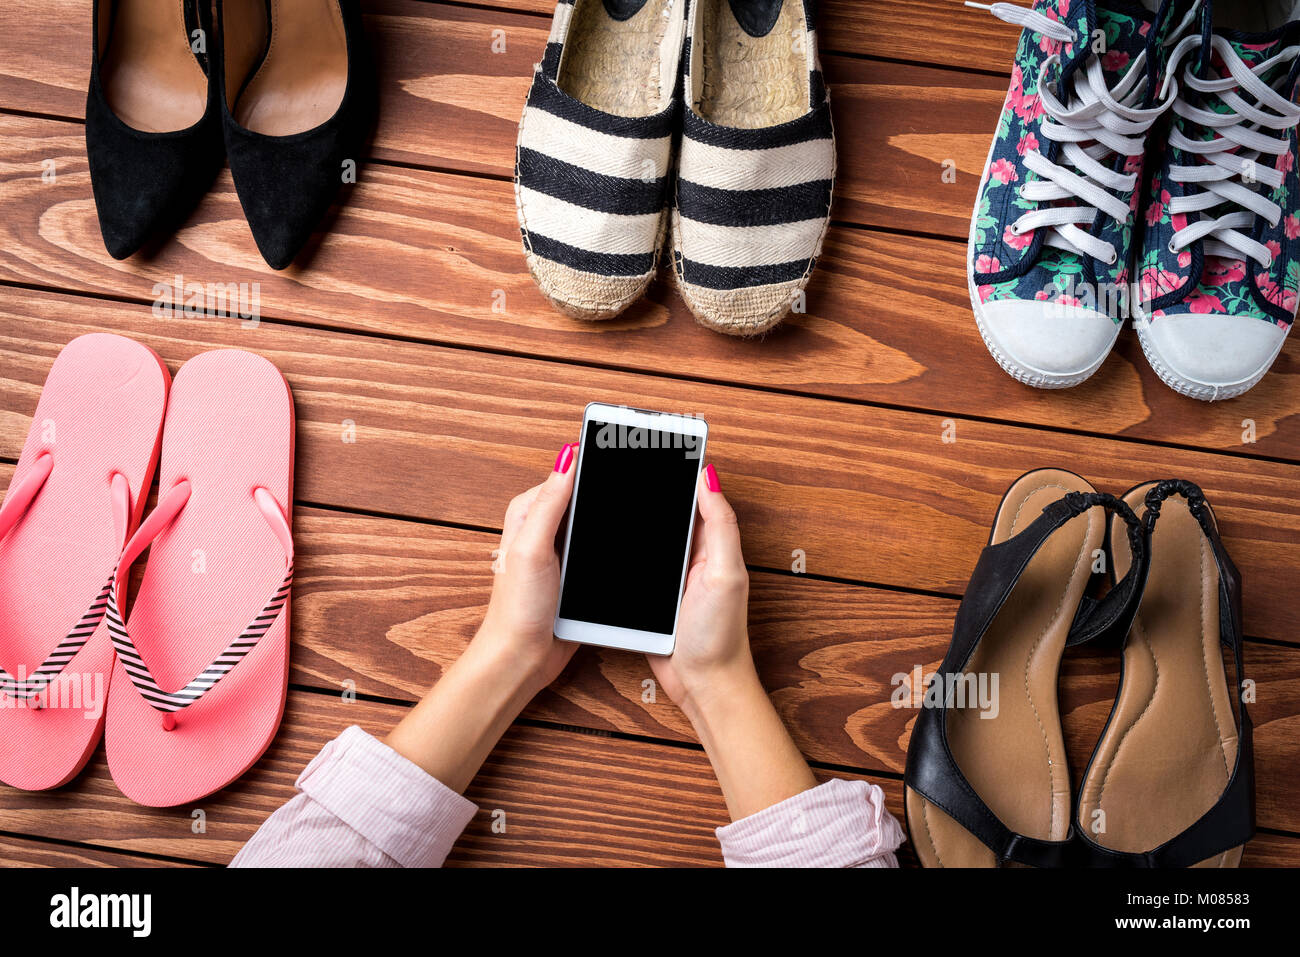 Woman's shoes collection. Fashion background - Stock Image